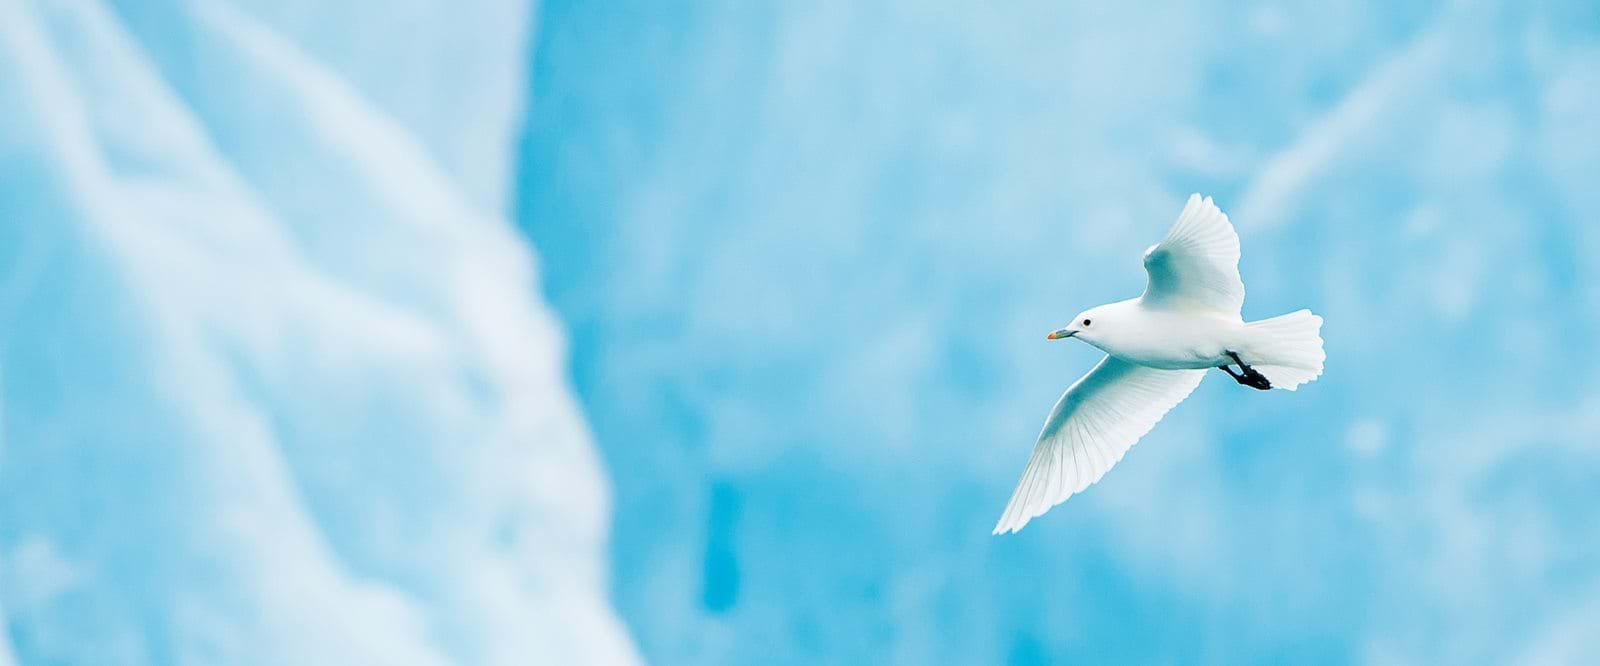 Ivory gull, Svalbard, birds in the Arctic, Arctic cruise